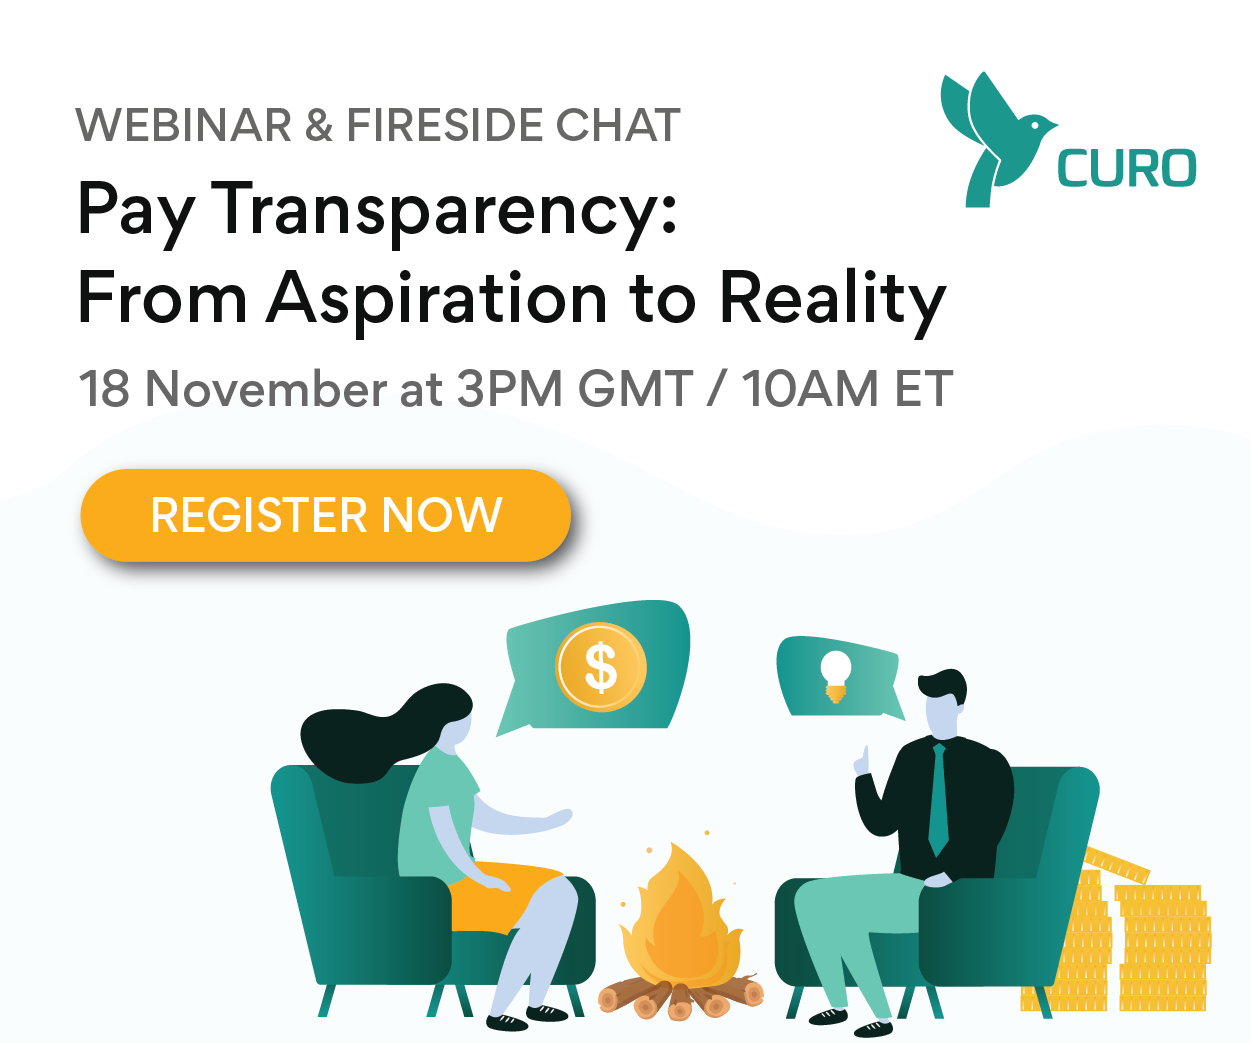 Pay Transparency: The Transition From Aspiration to Reality